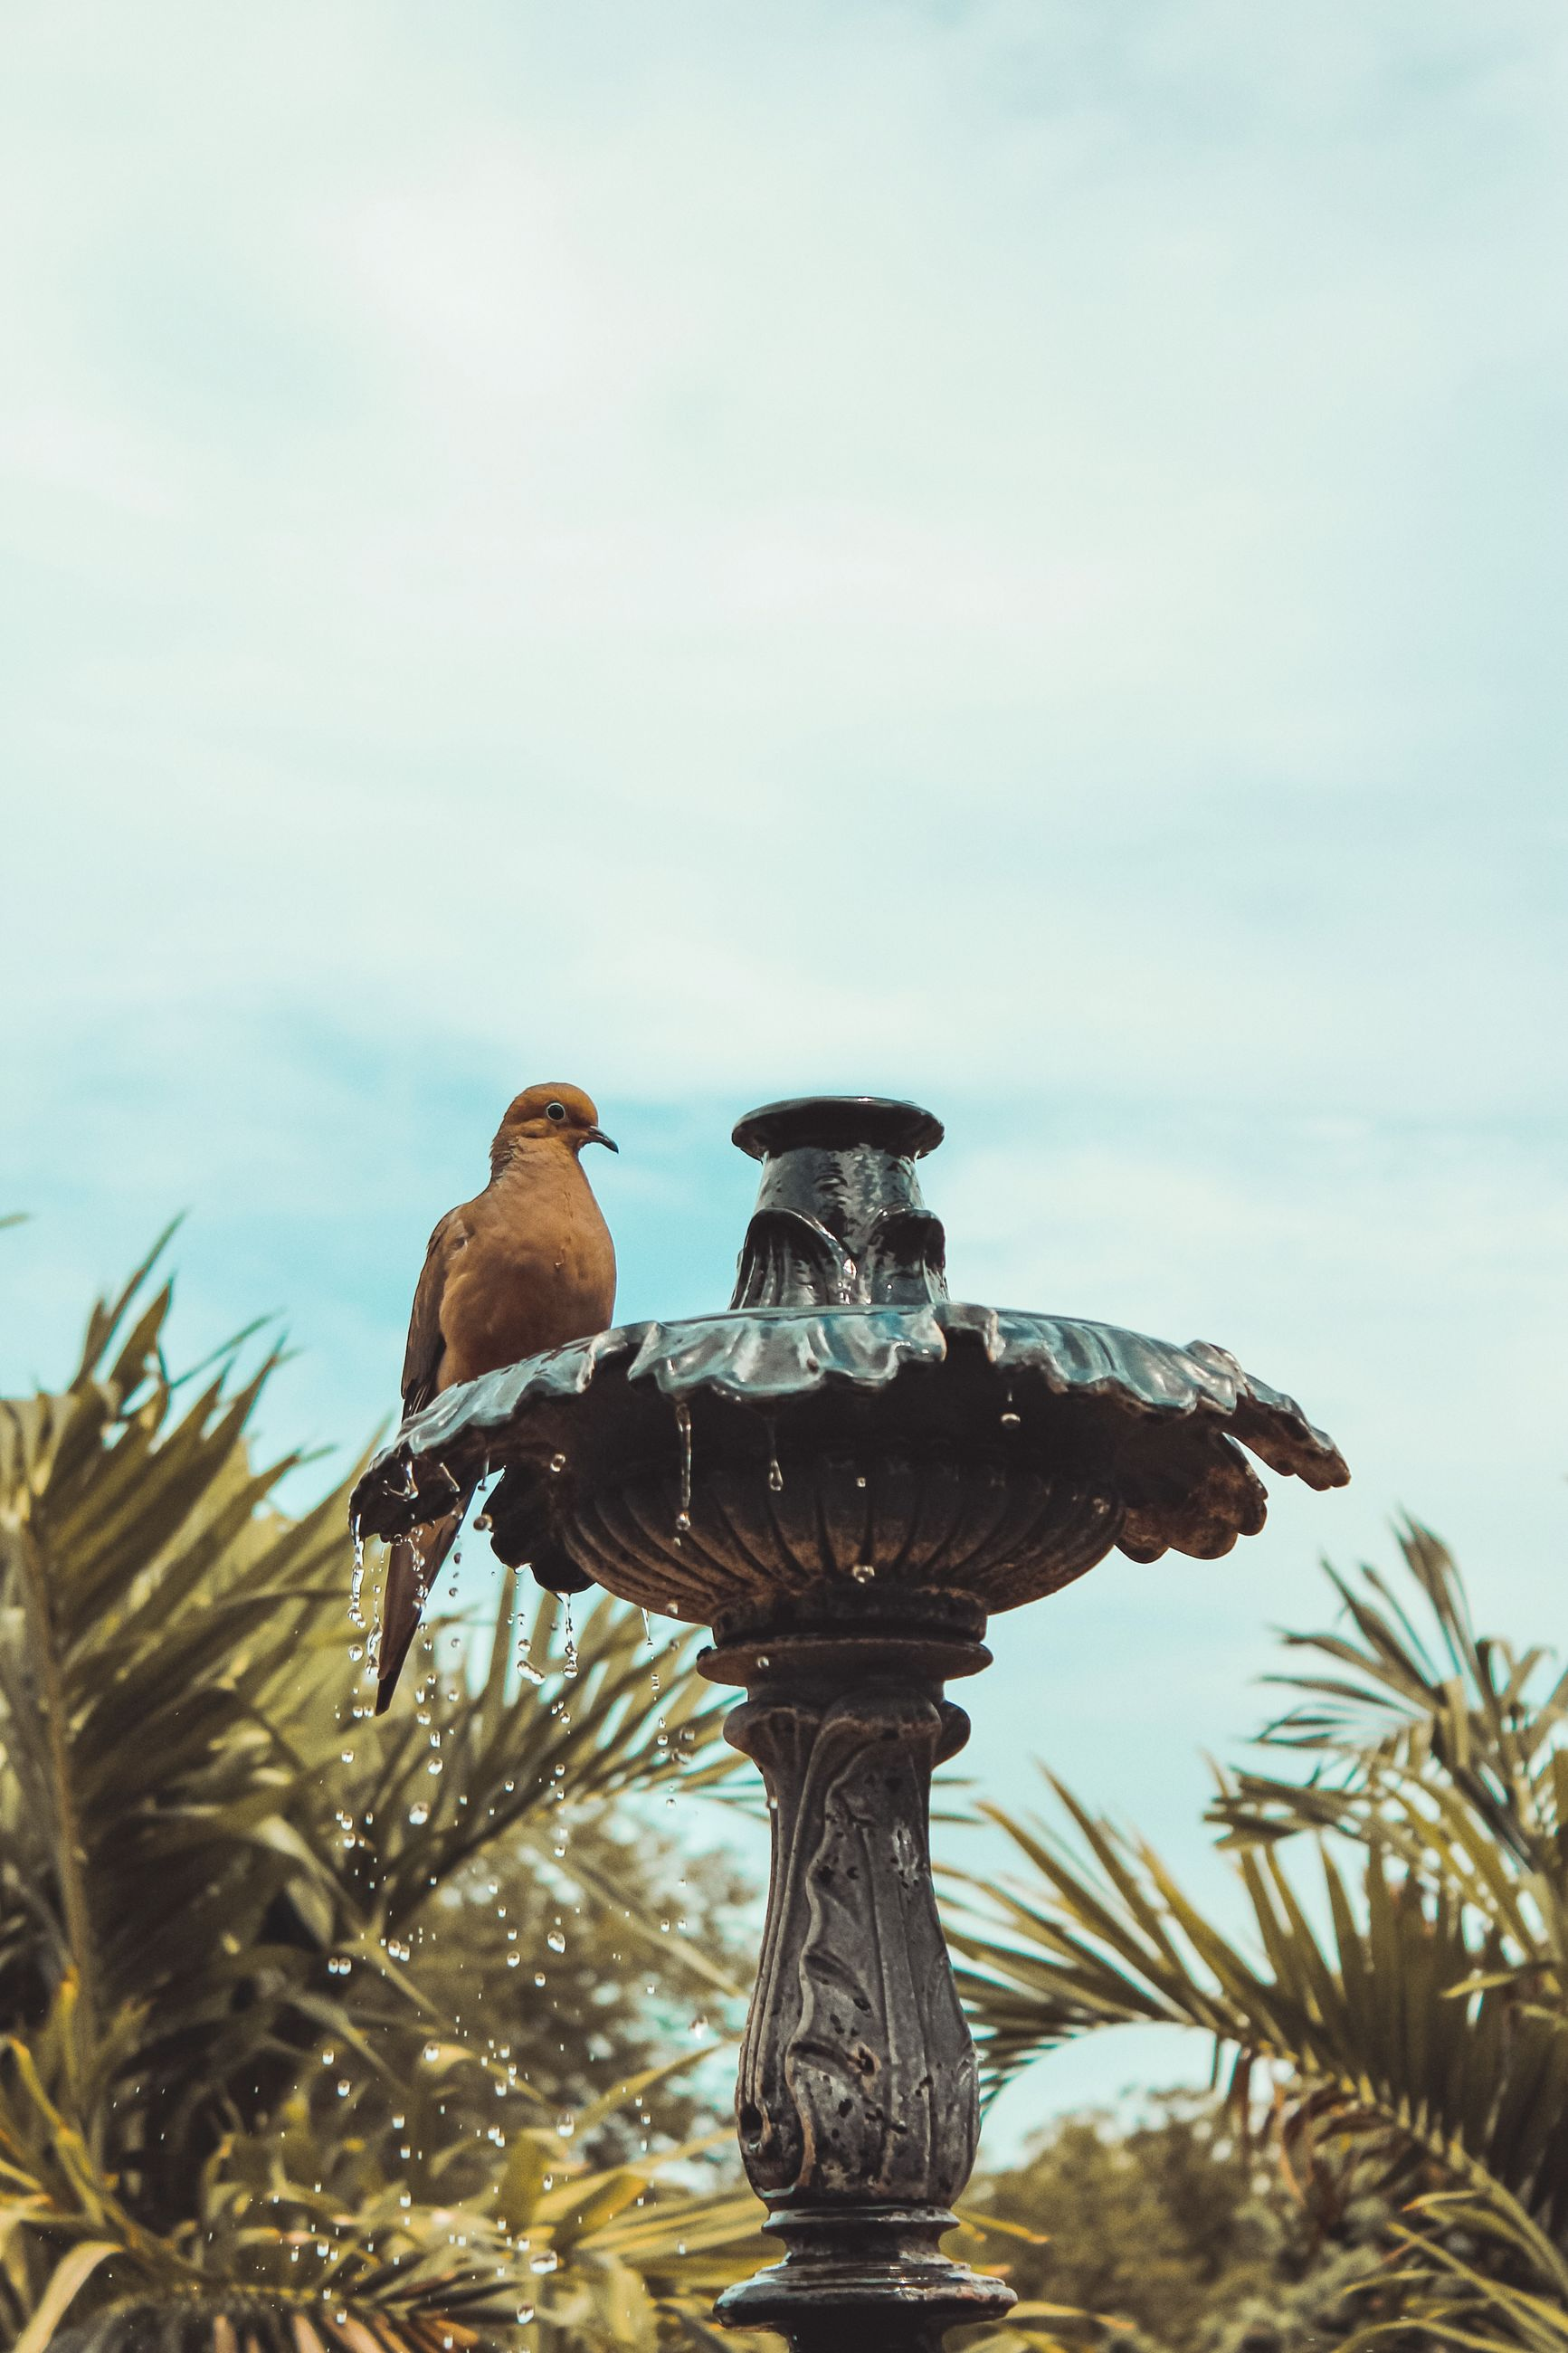 animals in the wild, vertebrate, bird, animal themes, animal, animal wildlife, sky, water, day, nature, perching, group of animals, no people, focus on foreground, cloud - sky, outdoors, sea, plant, two animals, eagle